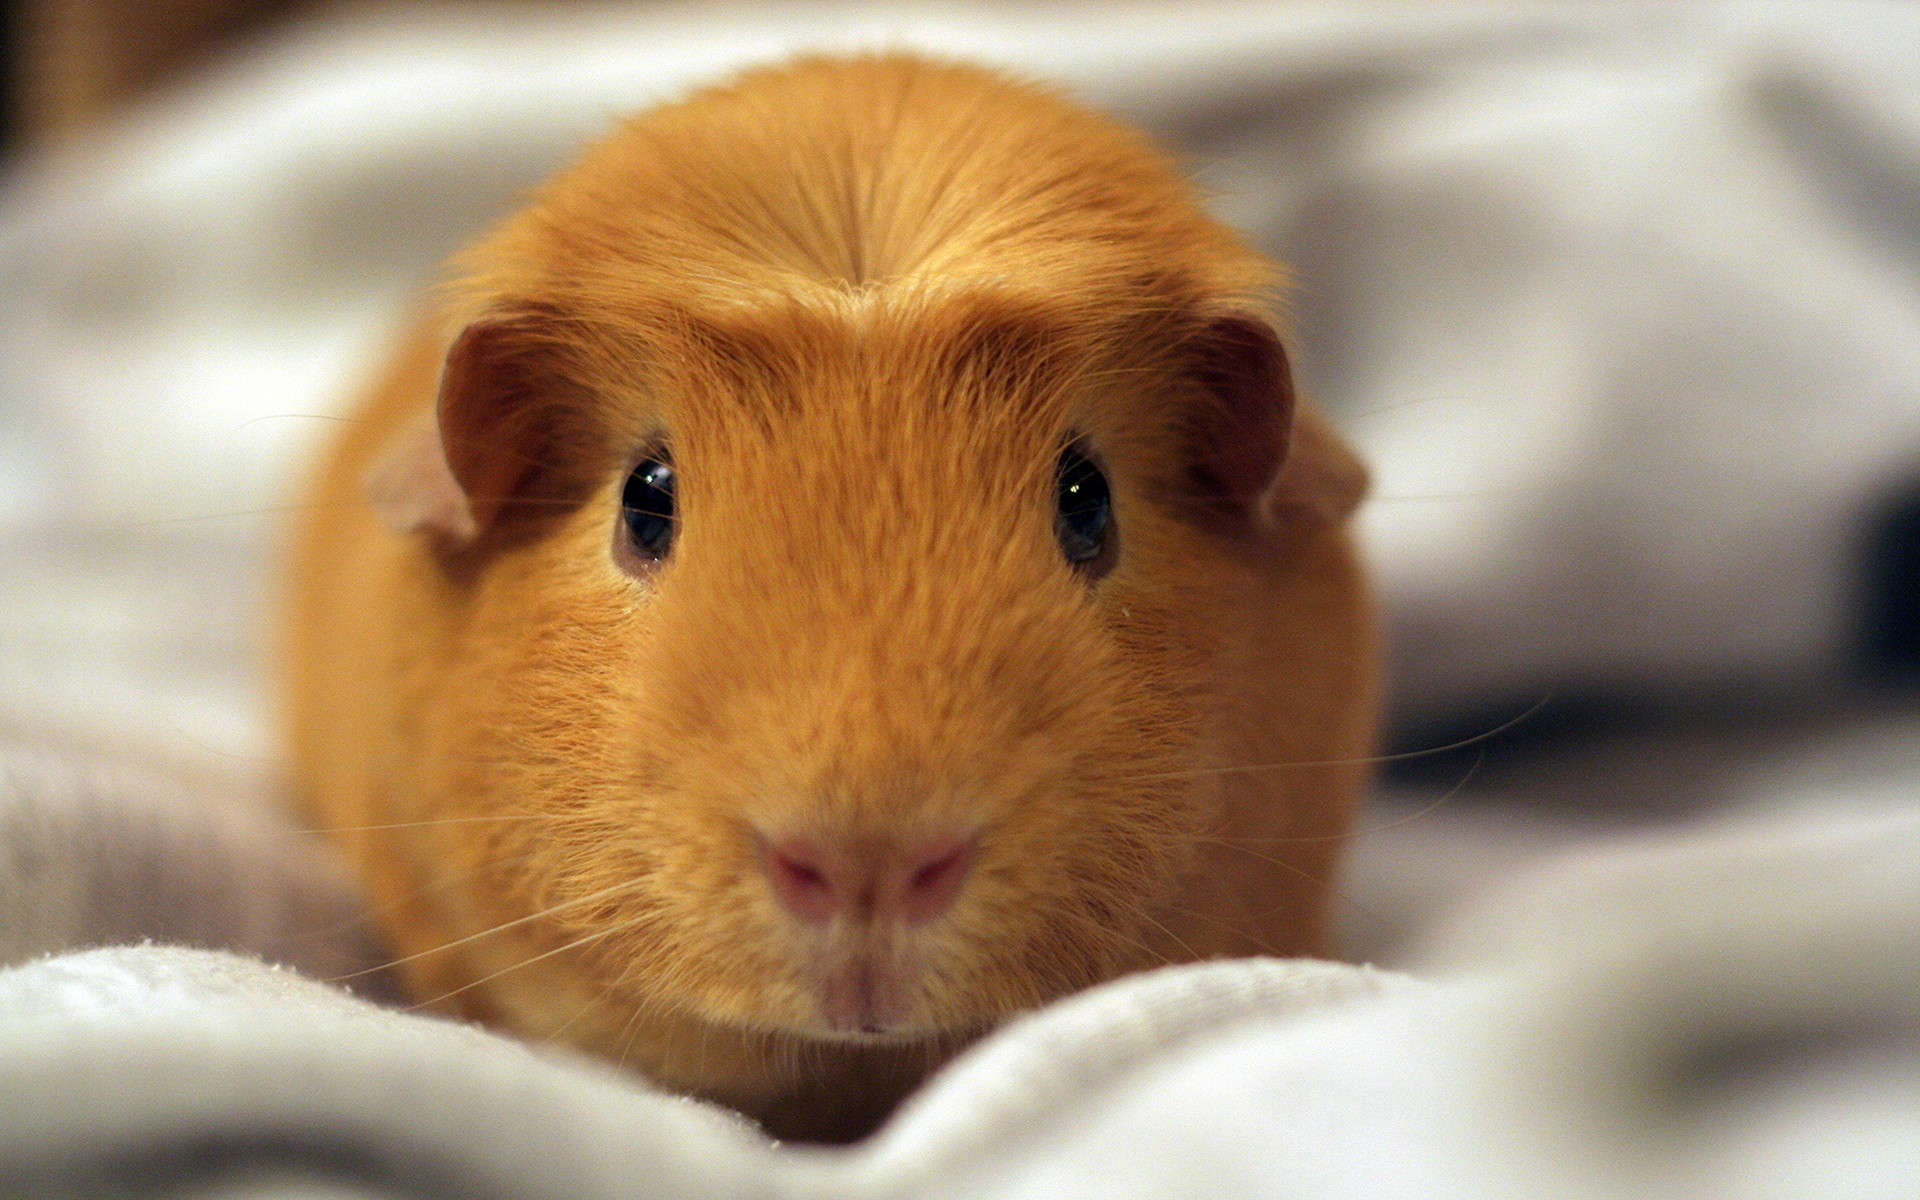 cute hamster wallpaper hot girl 1920x1200 1920x1200